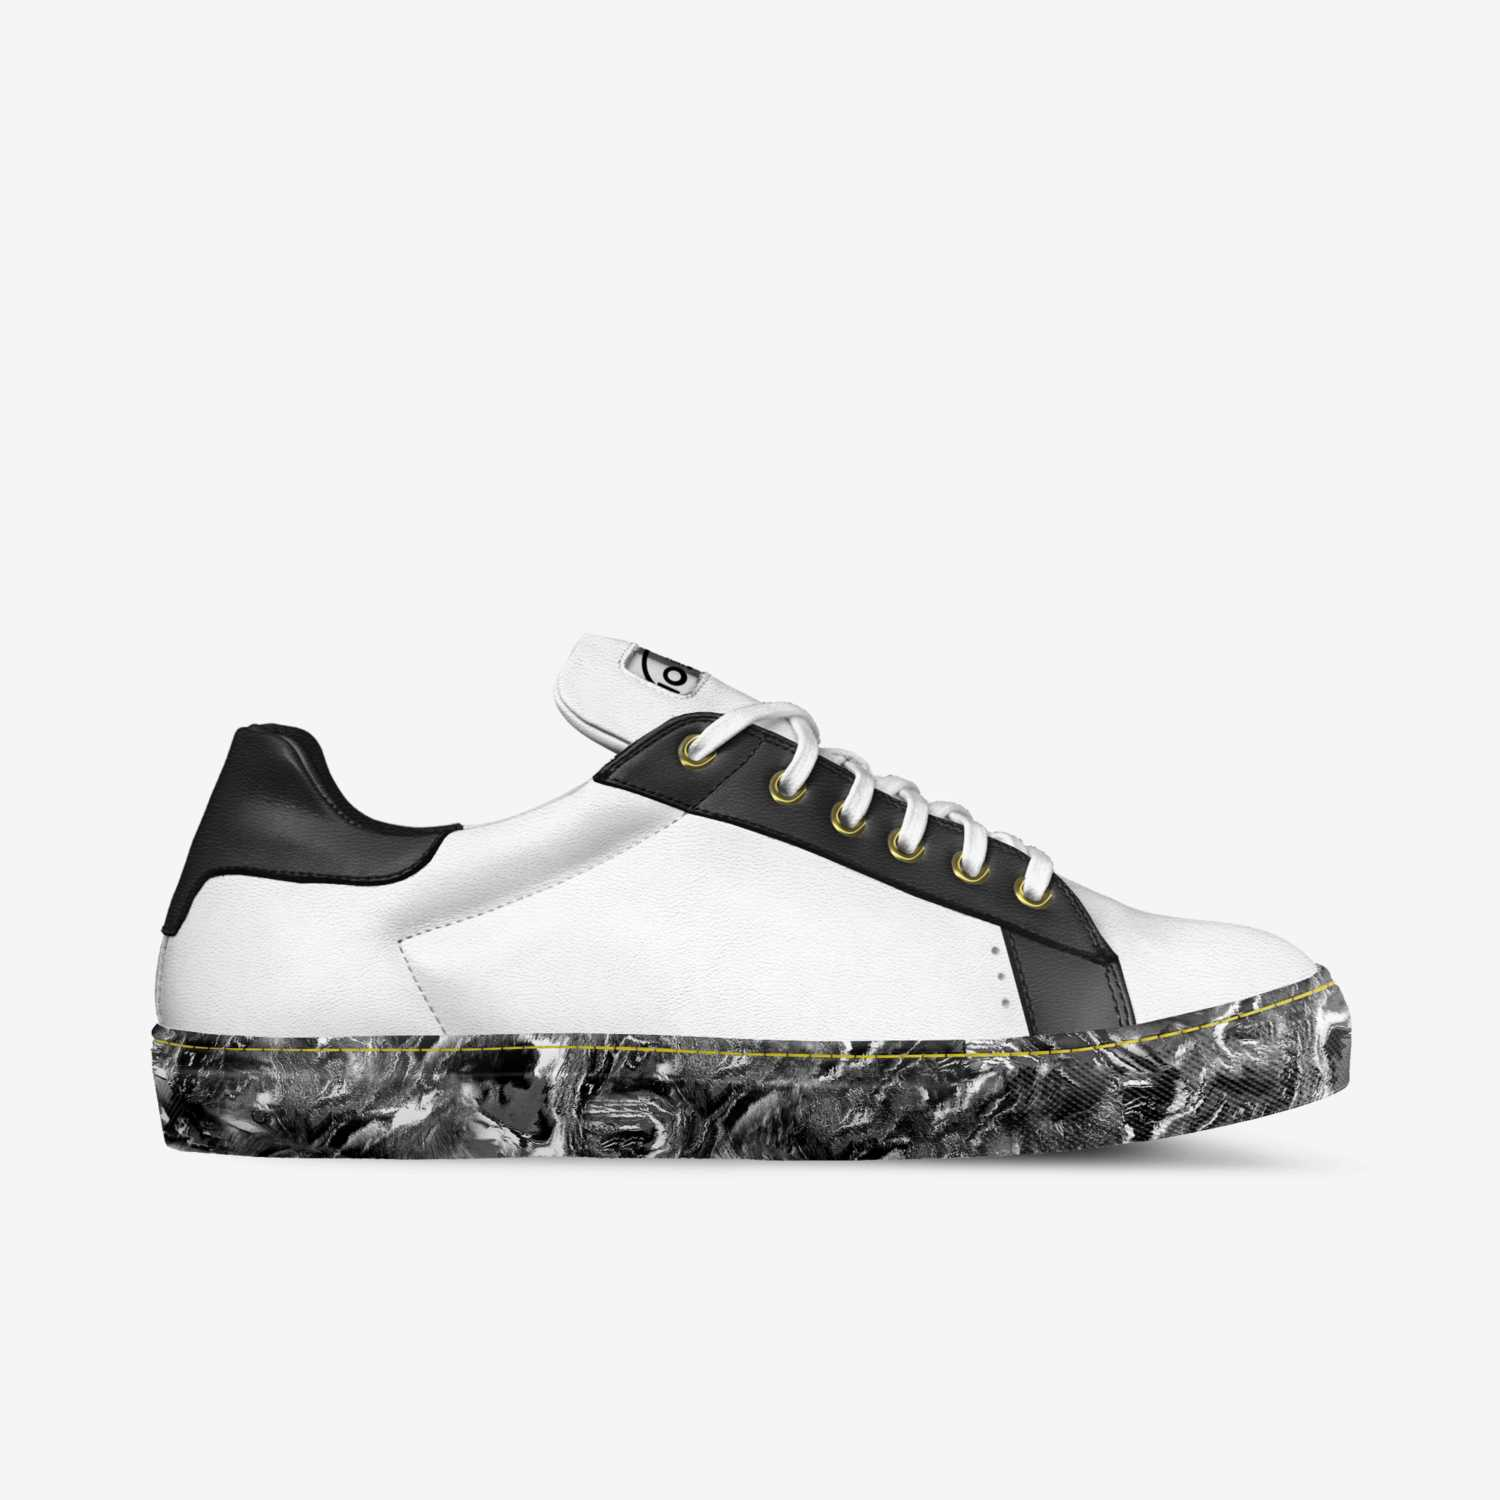 Pure Marble #10 Alceste Shoes alcesteshoes pure marble 10 shoes side